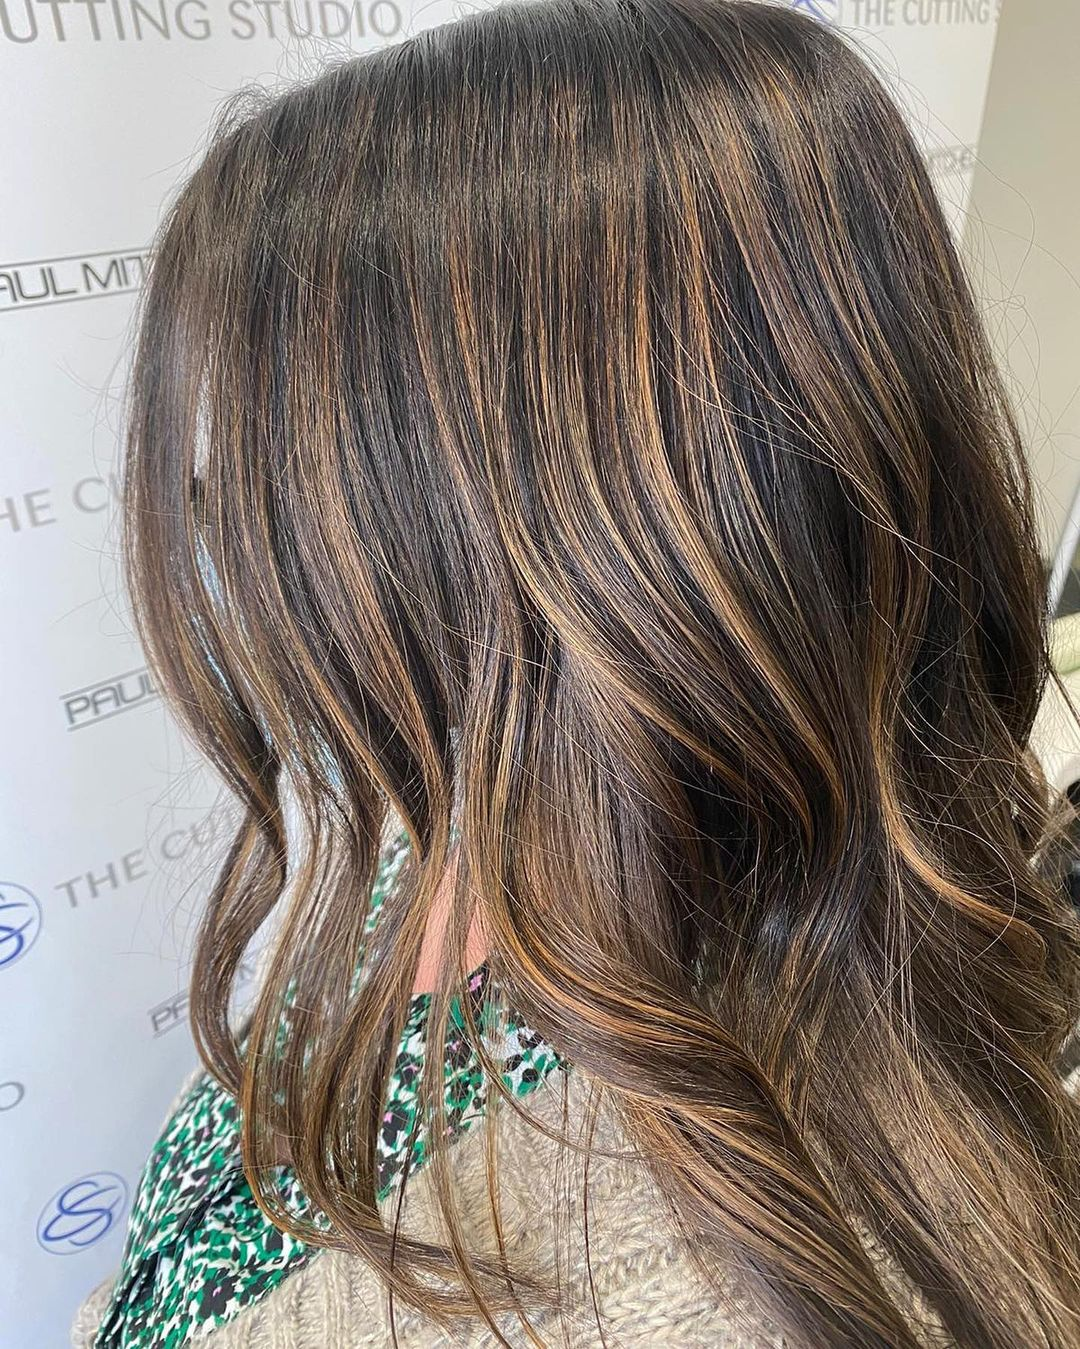 Hair Colour & What To Ask For